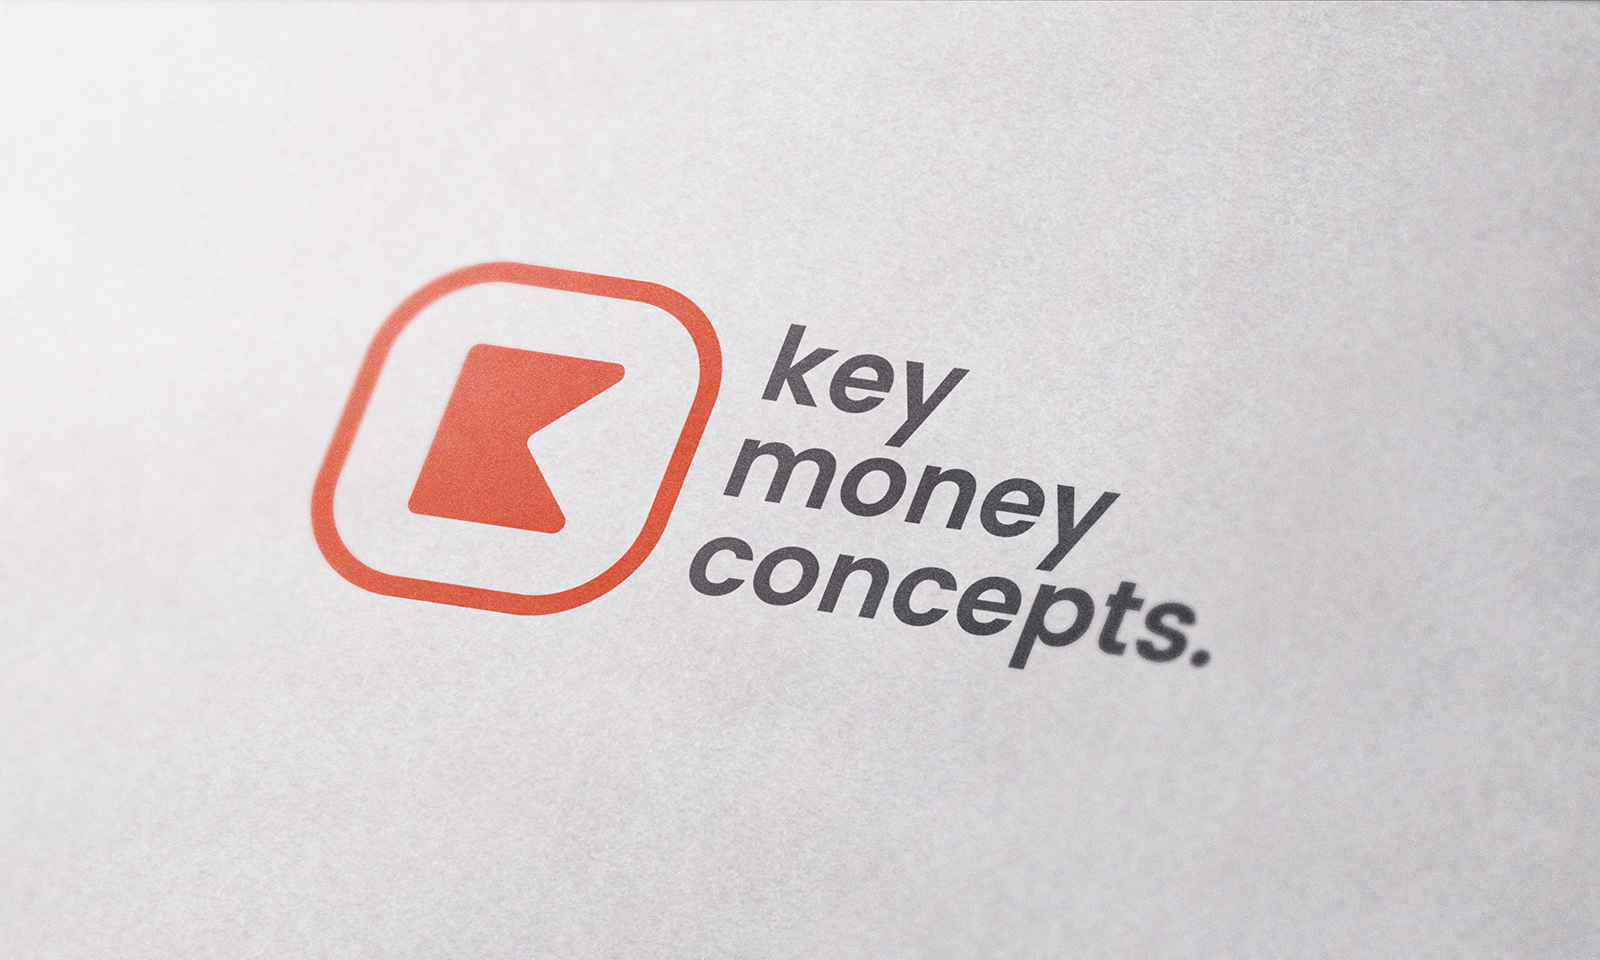 logo-key-money-concepts-2